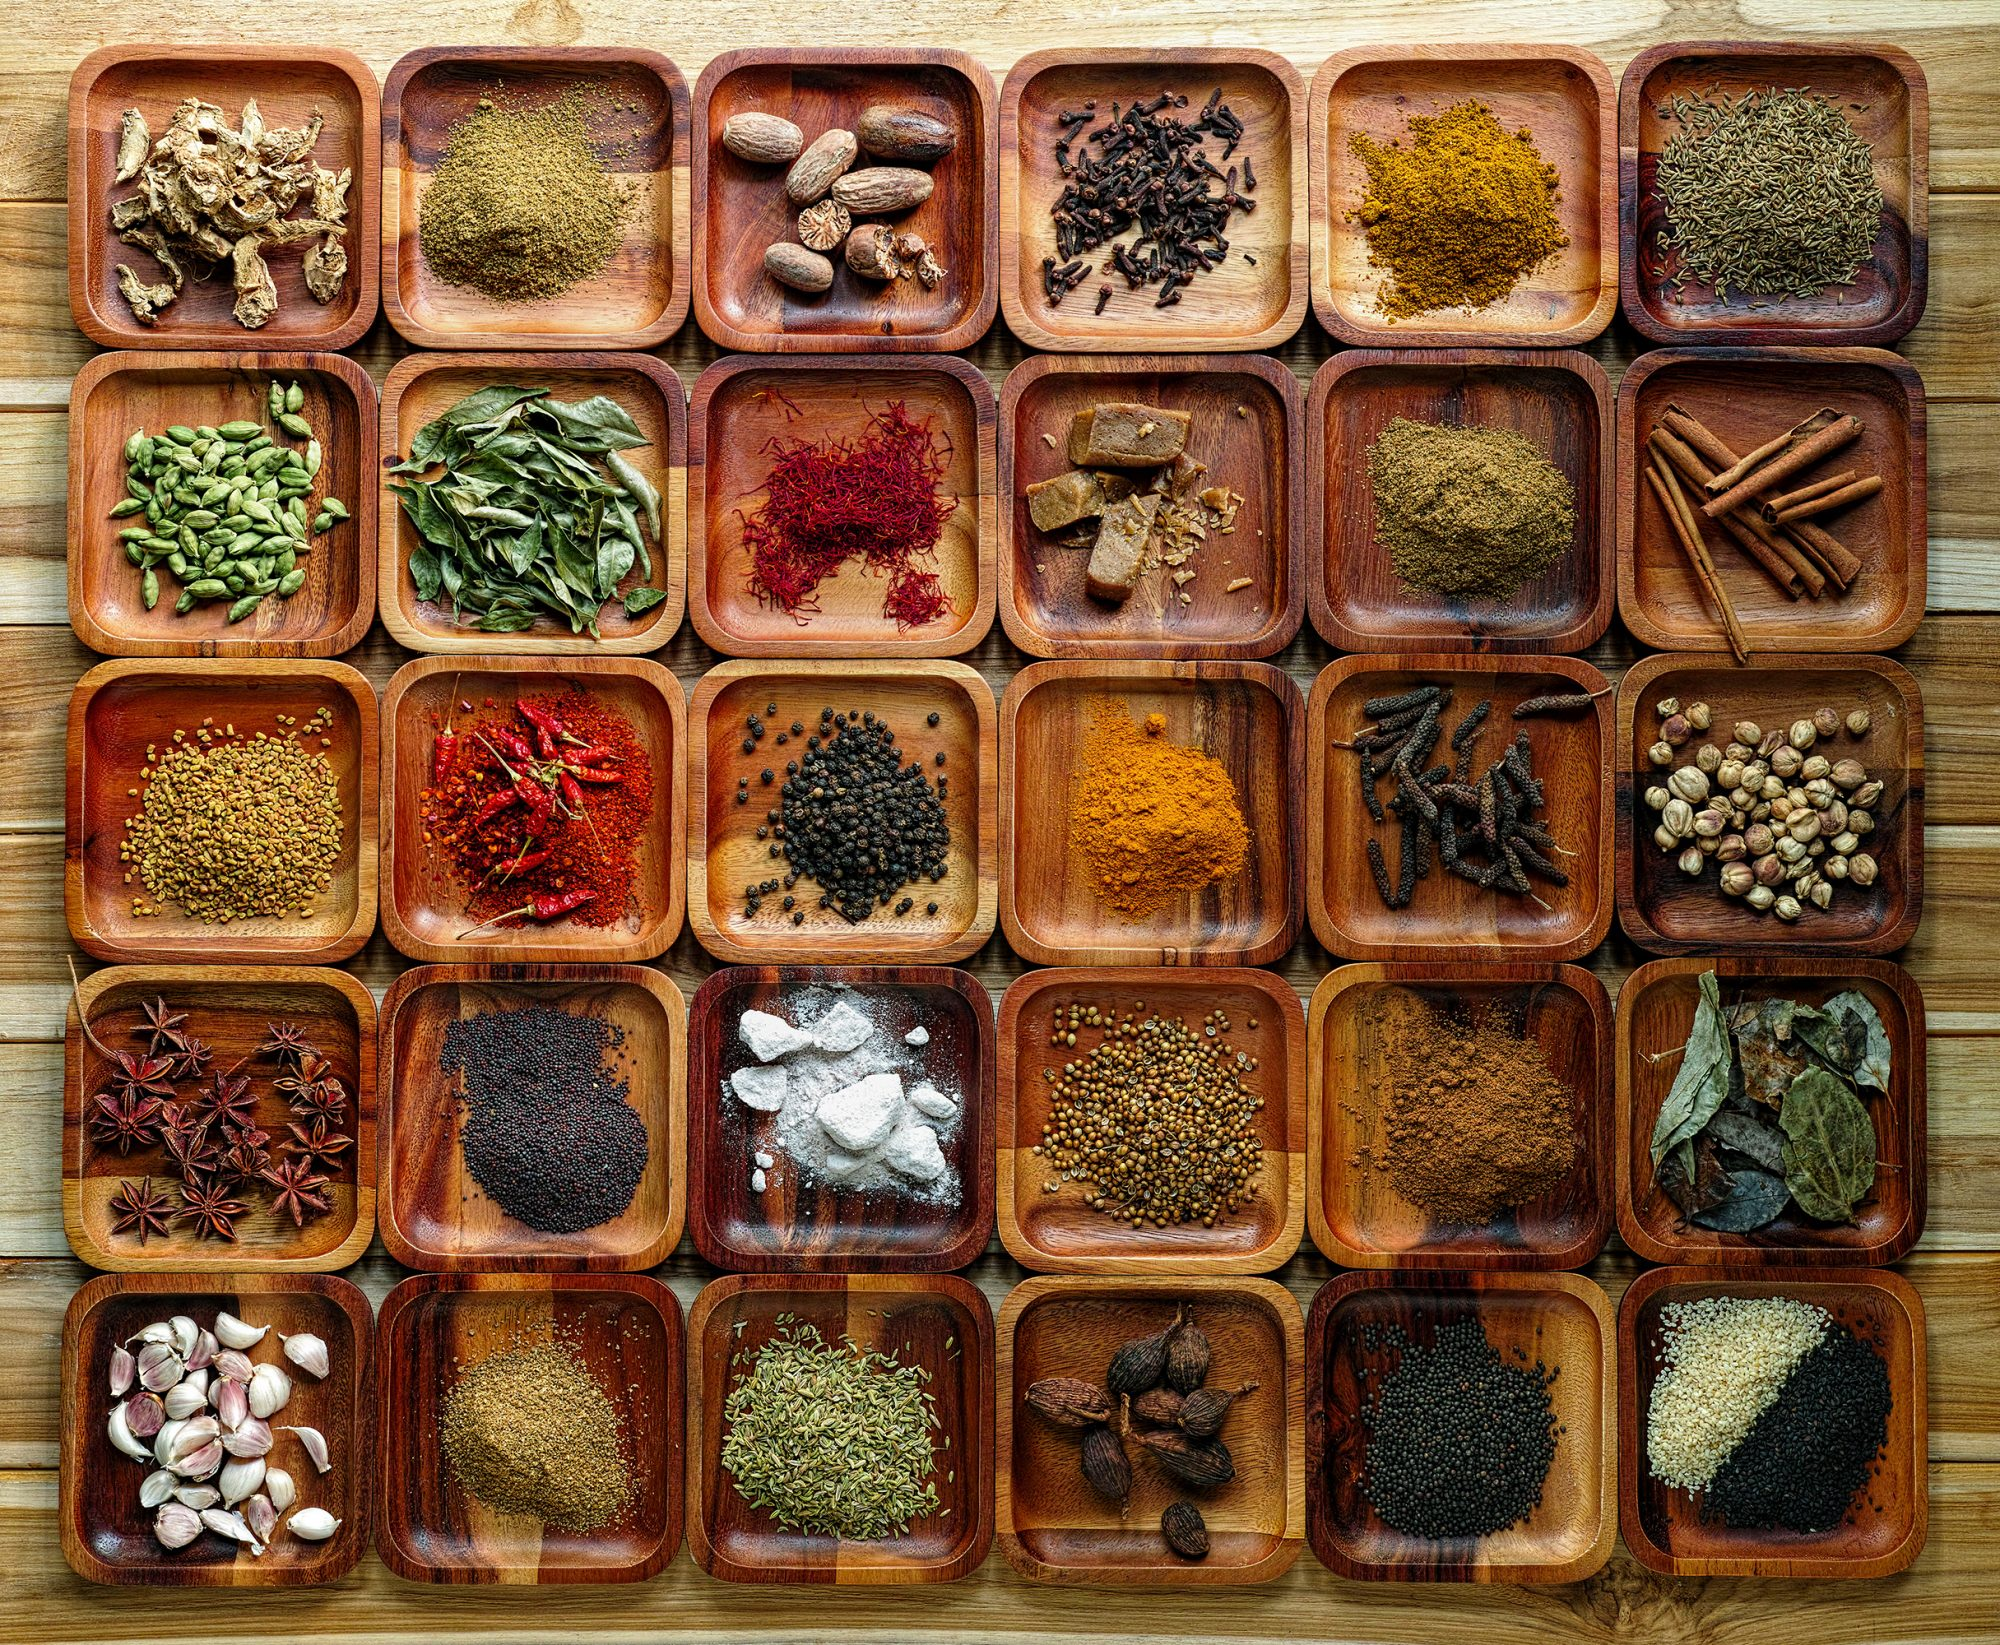 Common Indian herbs and spice ingriedients for preparation of Indian Cuisine in wooden trays on an old rough teak board table.